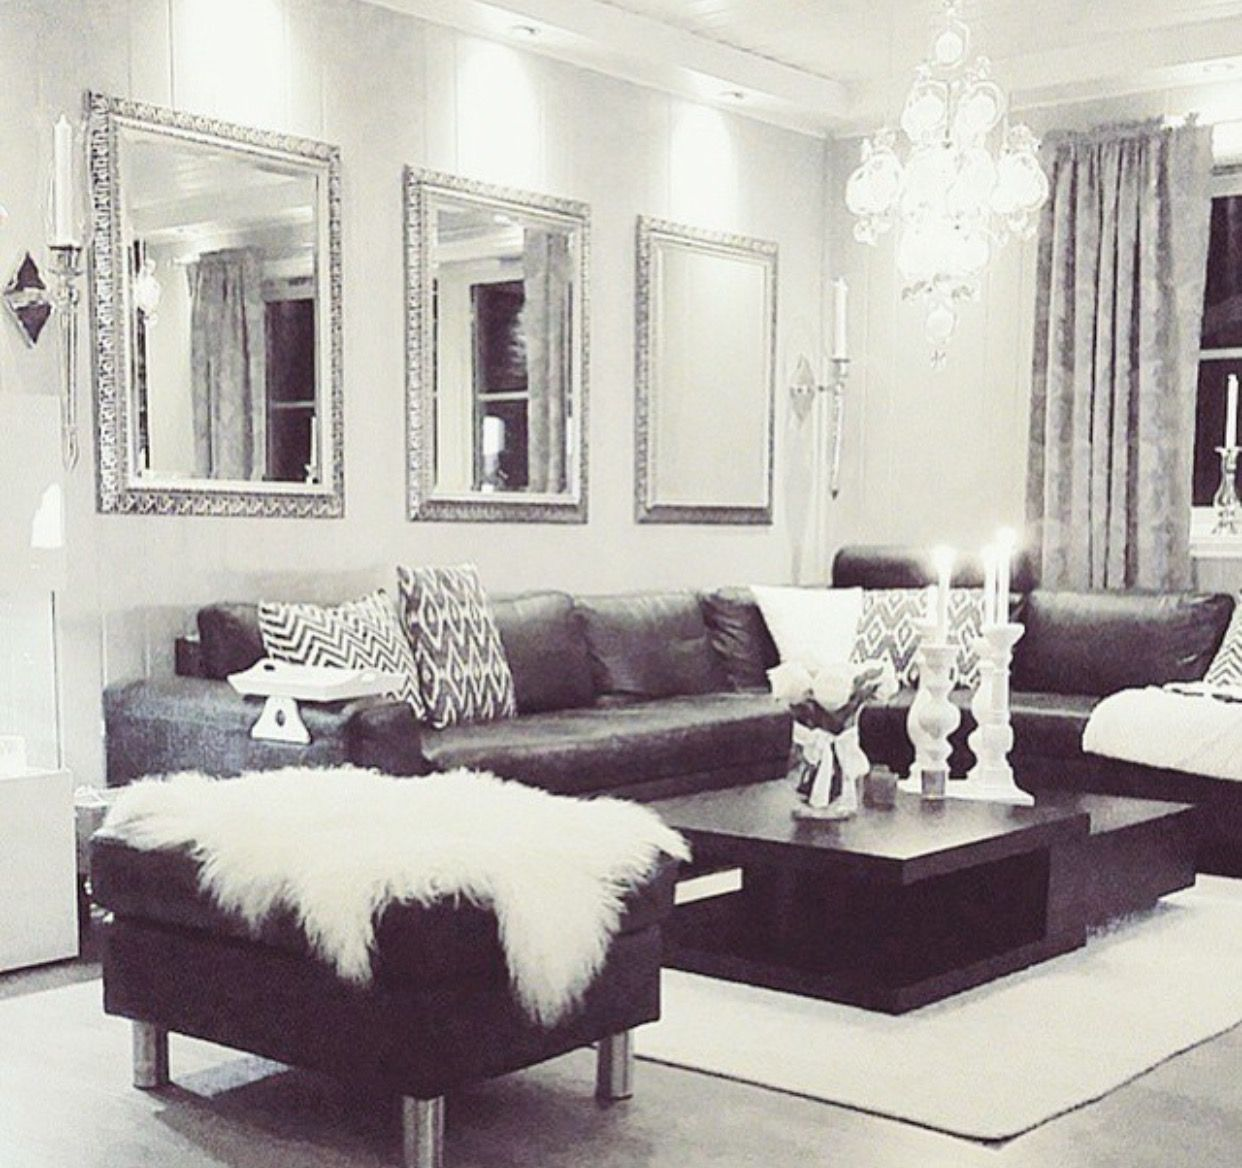 Pin by Tracy Snyder on Fabulousness | Pinterest | Living room ideas ...